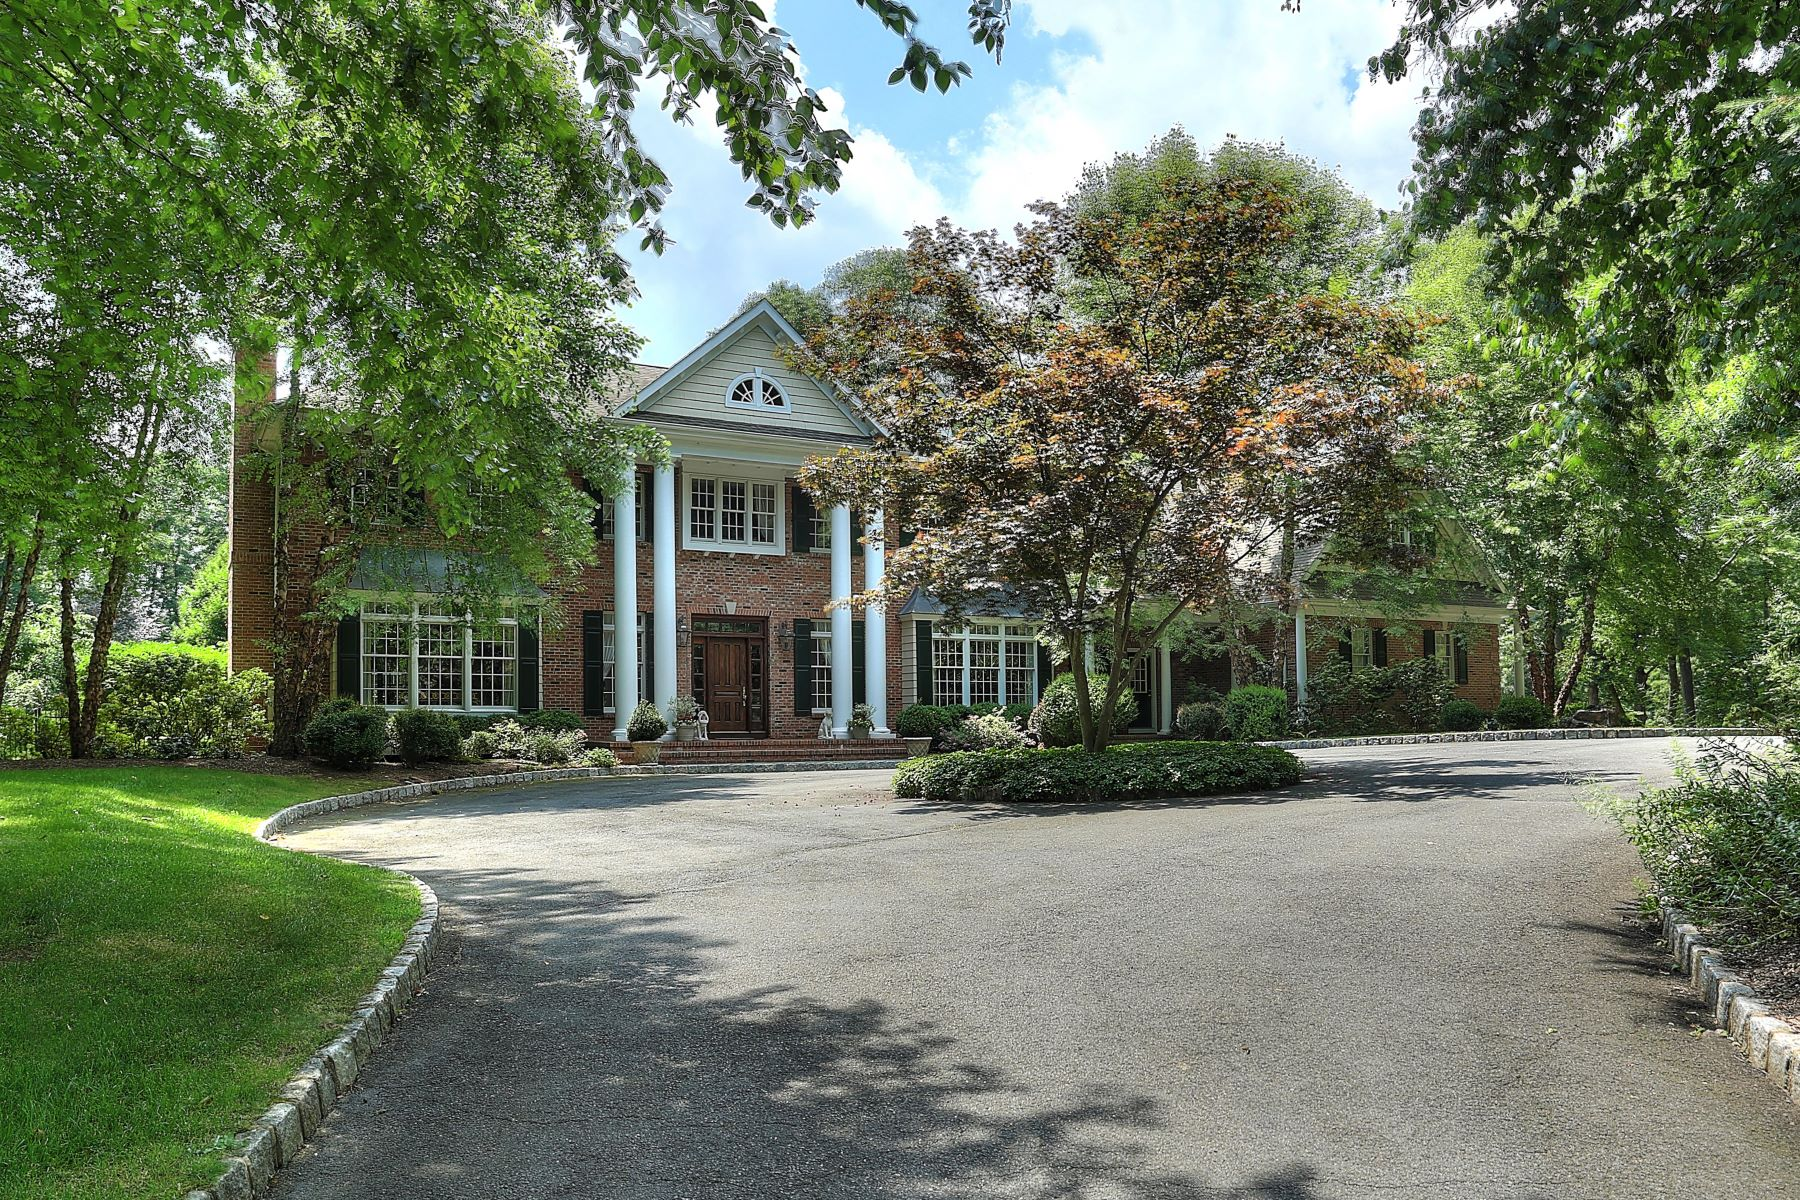 single family homes para Venda às Gracious Custom Colonial 9 Timber Ridge Road, Mendham, Nova Jersey 07945 Estados Unidos